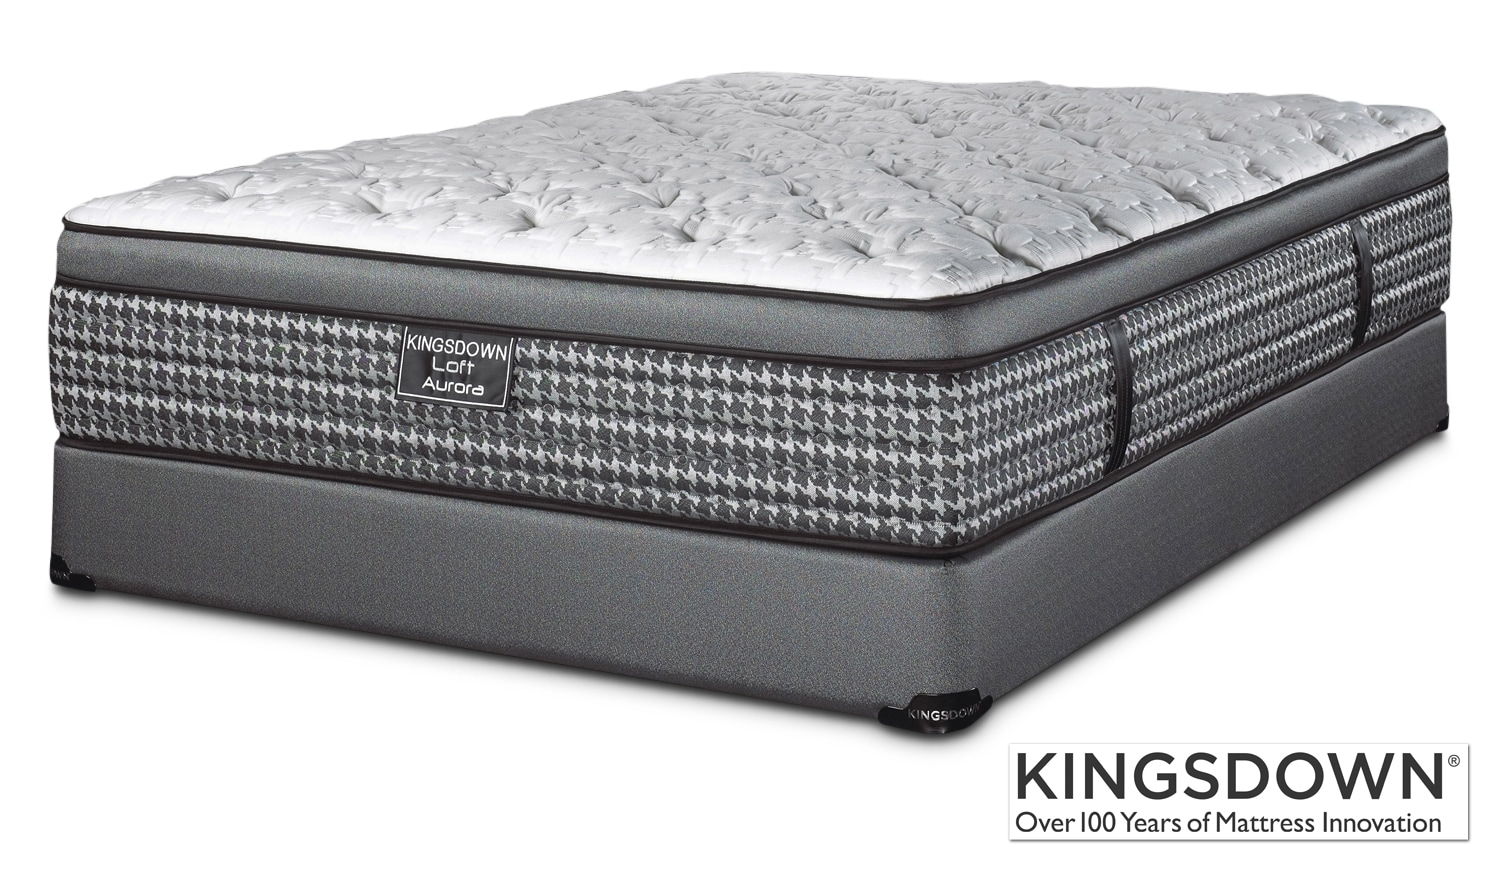 Kingsdown Aurora Queen Mattress Boxspring Set Leon S